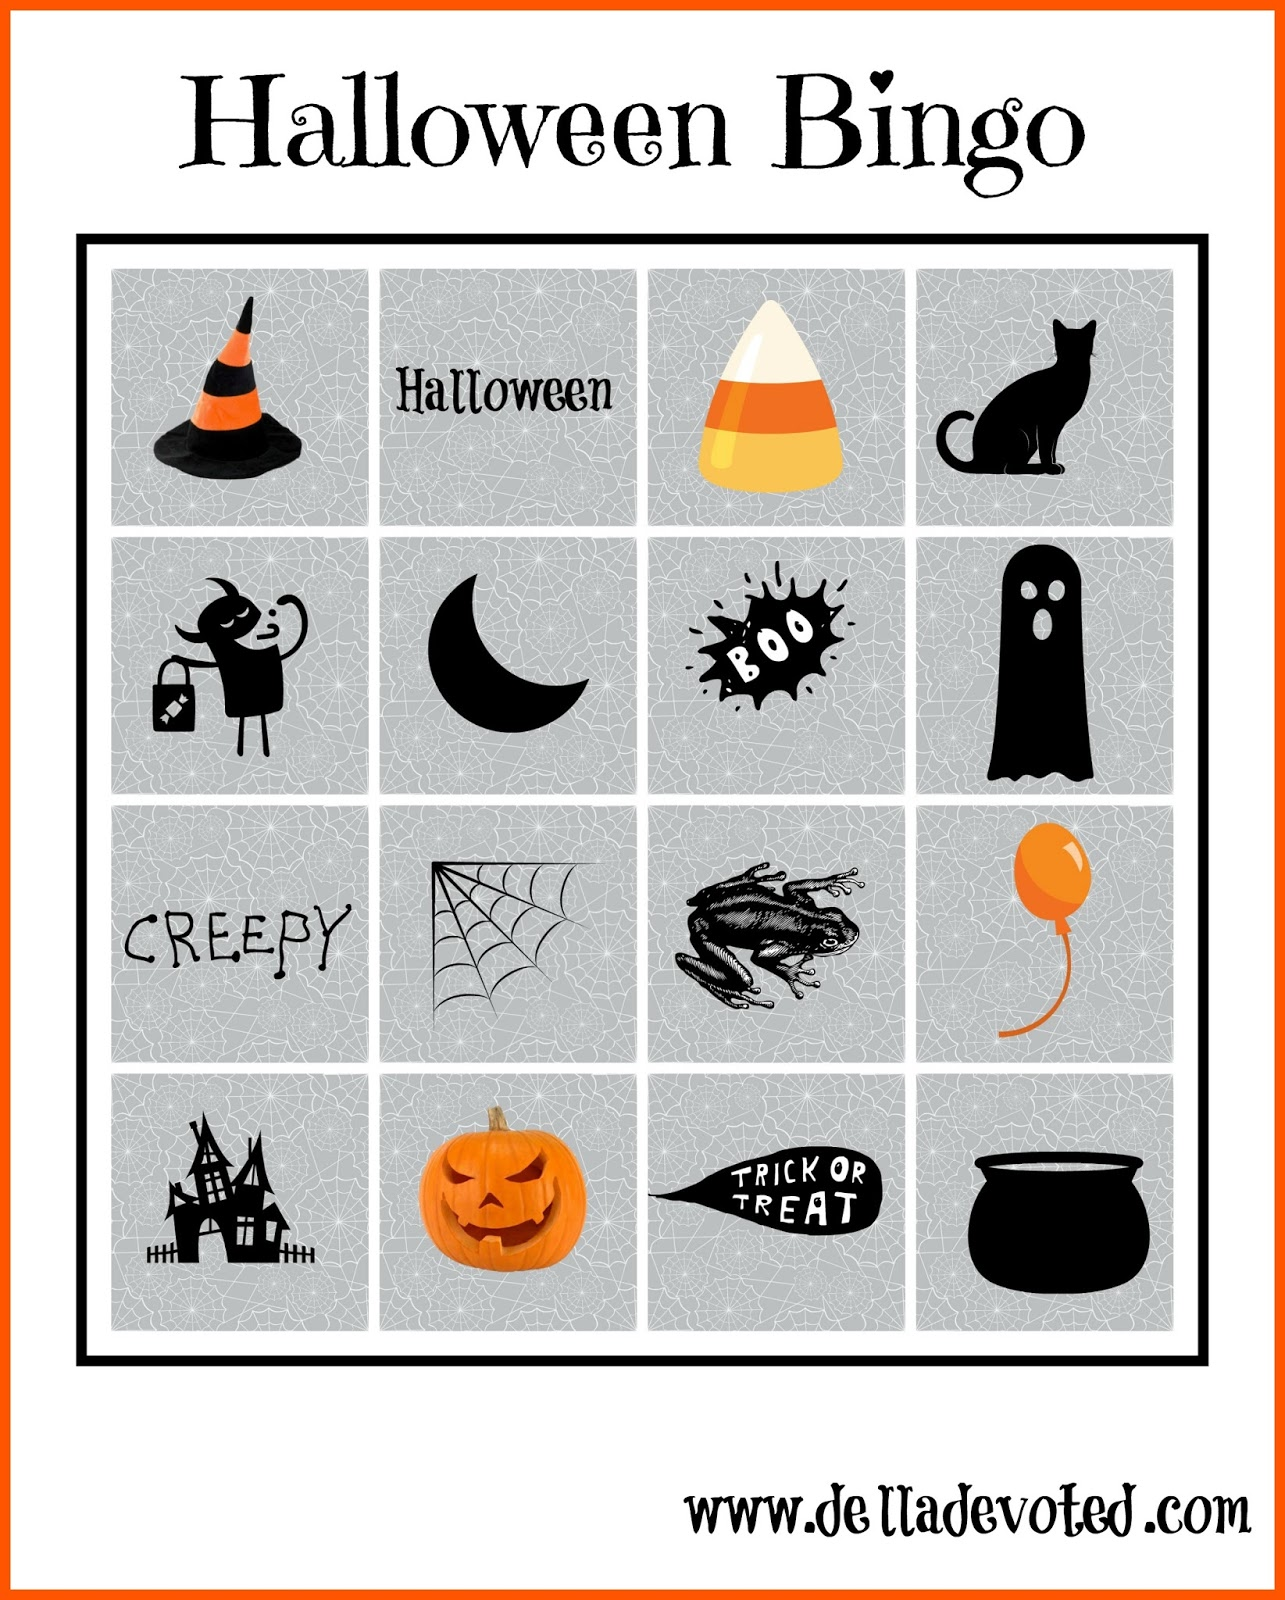 photo regarding Free Halloween Bingo Printable called Cost-free Halloween Bingo Printables - Della Dedicated